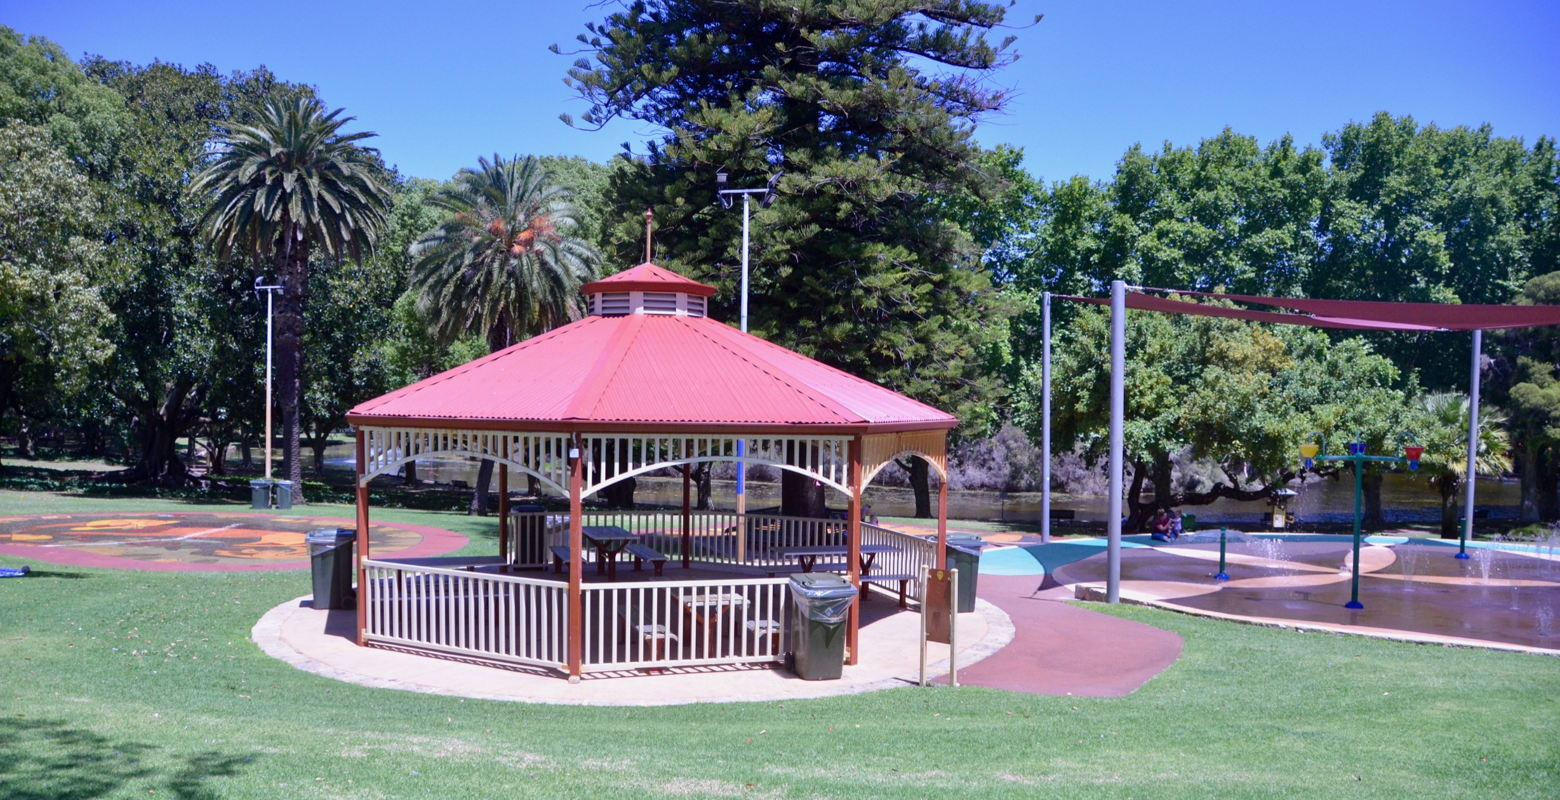 The Best Outdoor Spots For A Child S Birthday Party Perth Mums Group